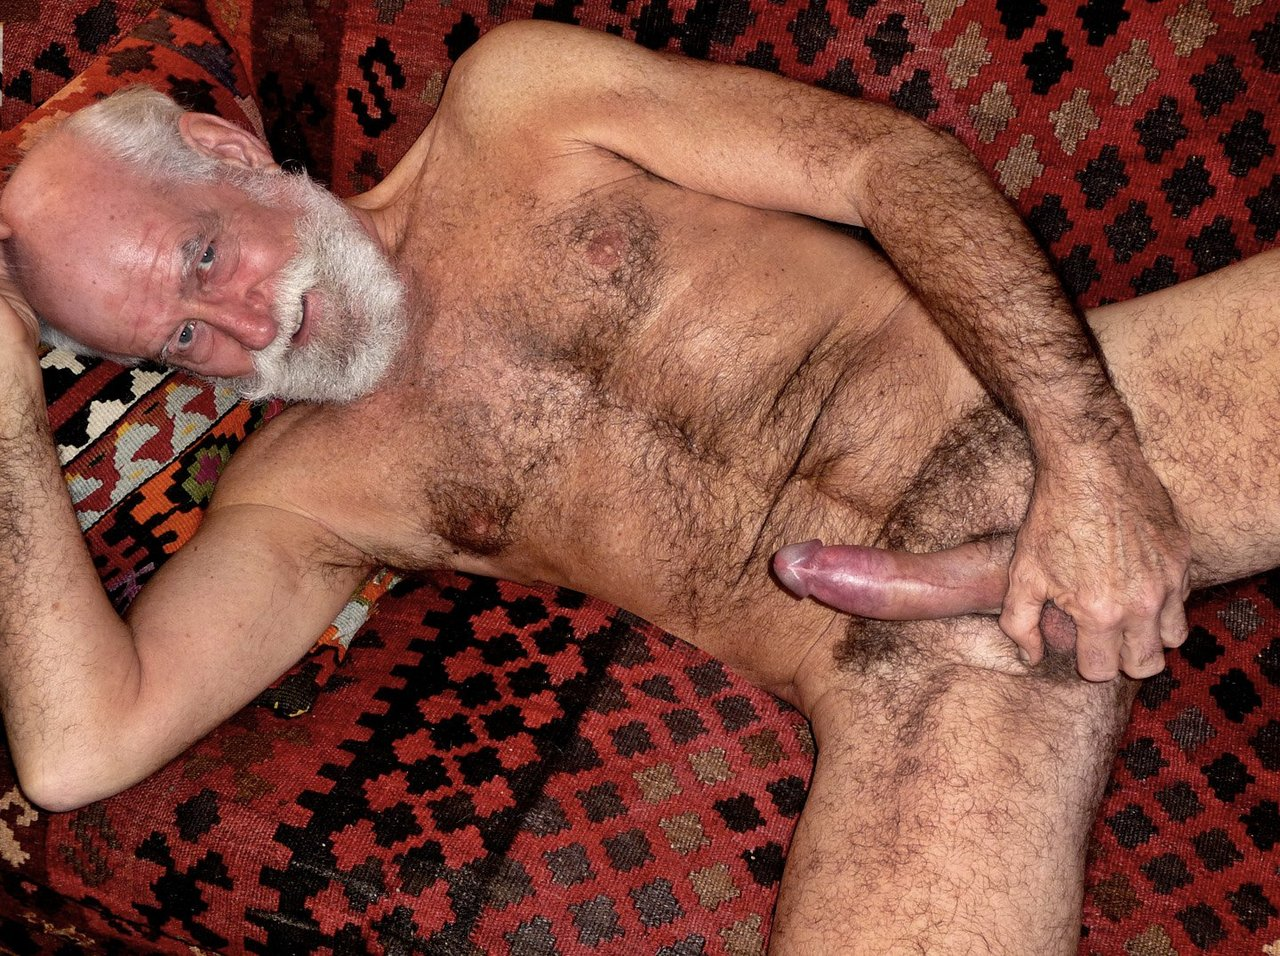 hairy oldermen - naked silver daddies - naked silver dad